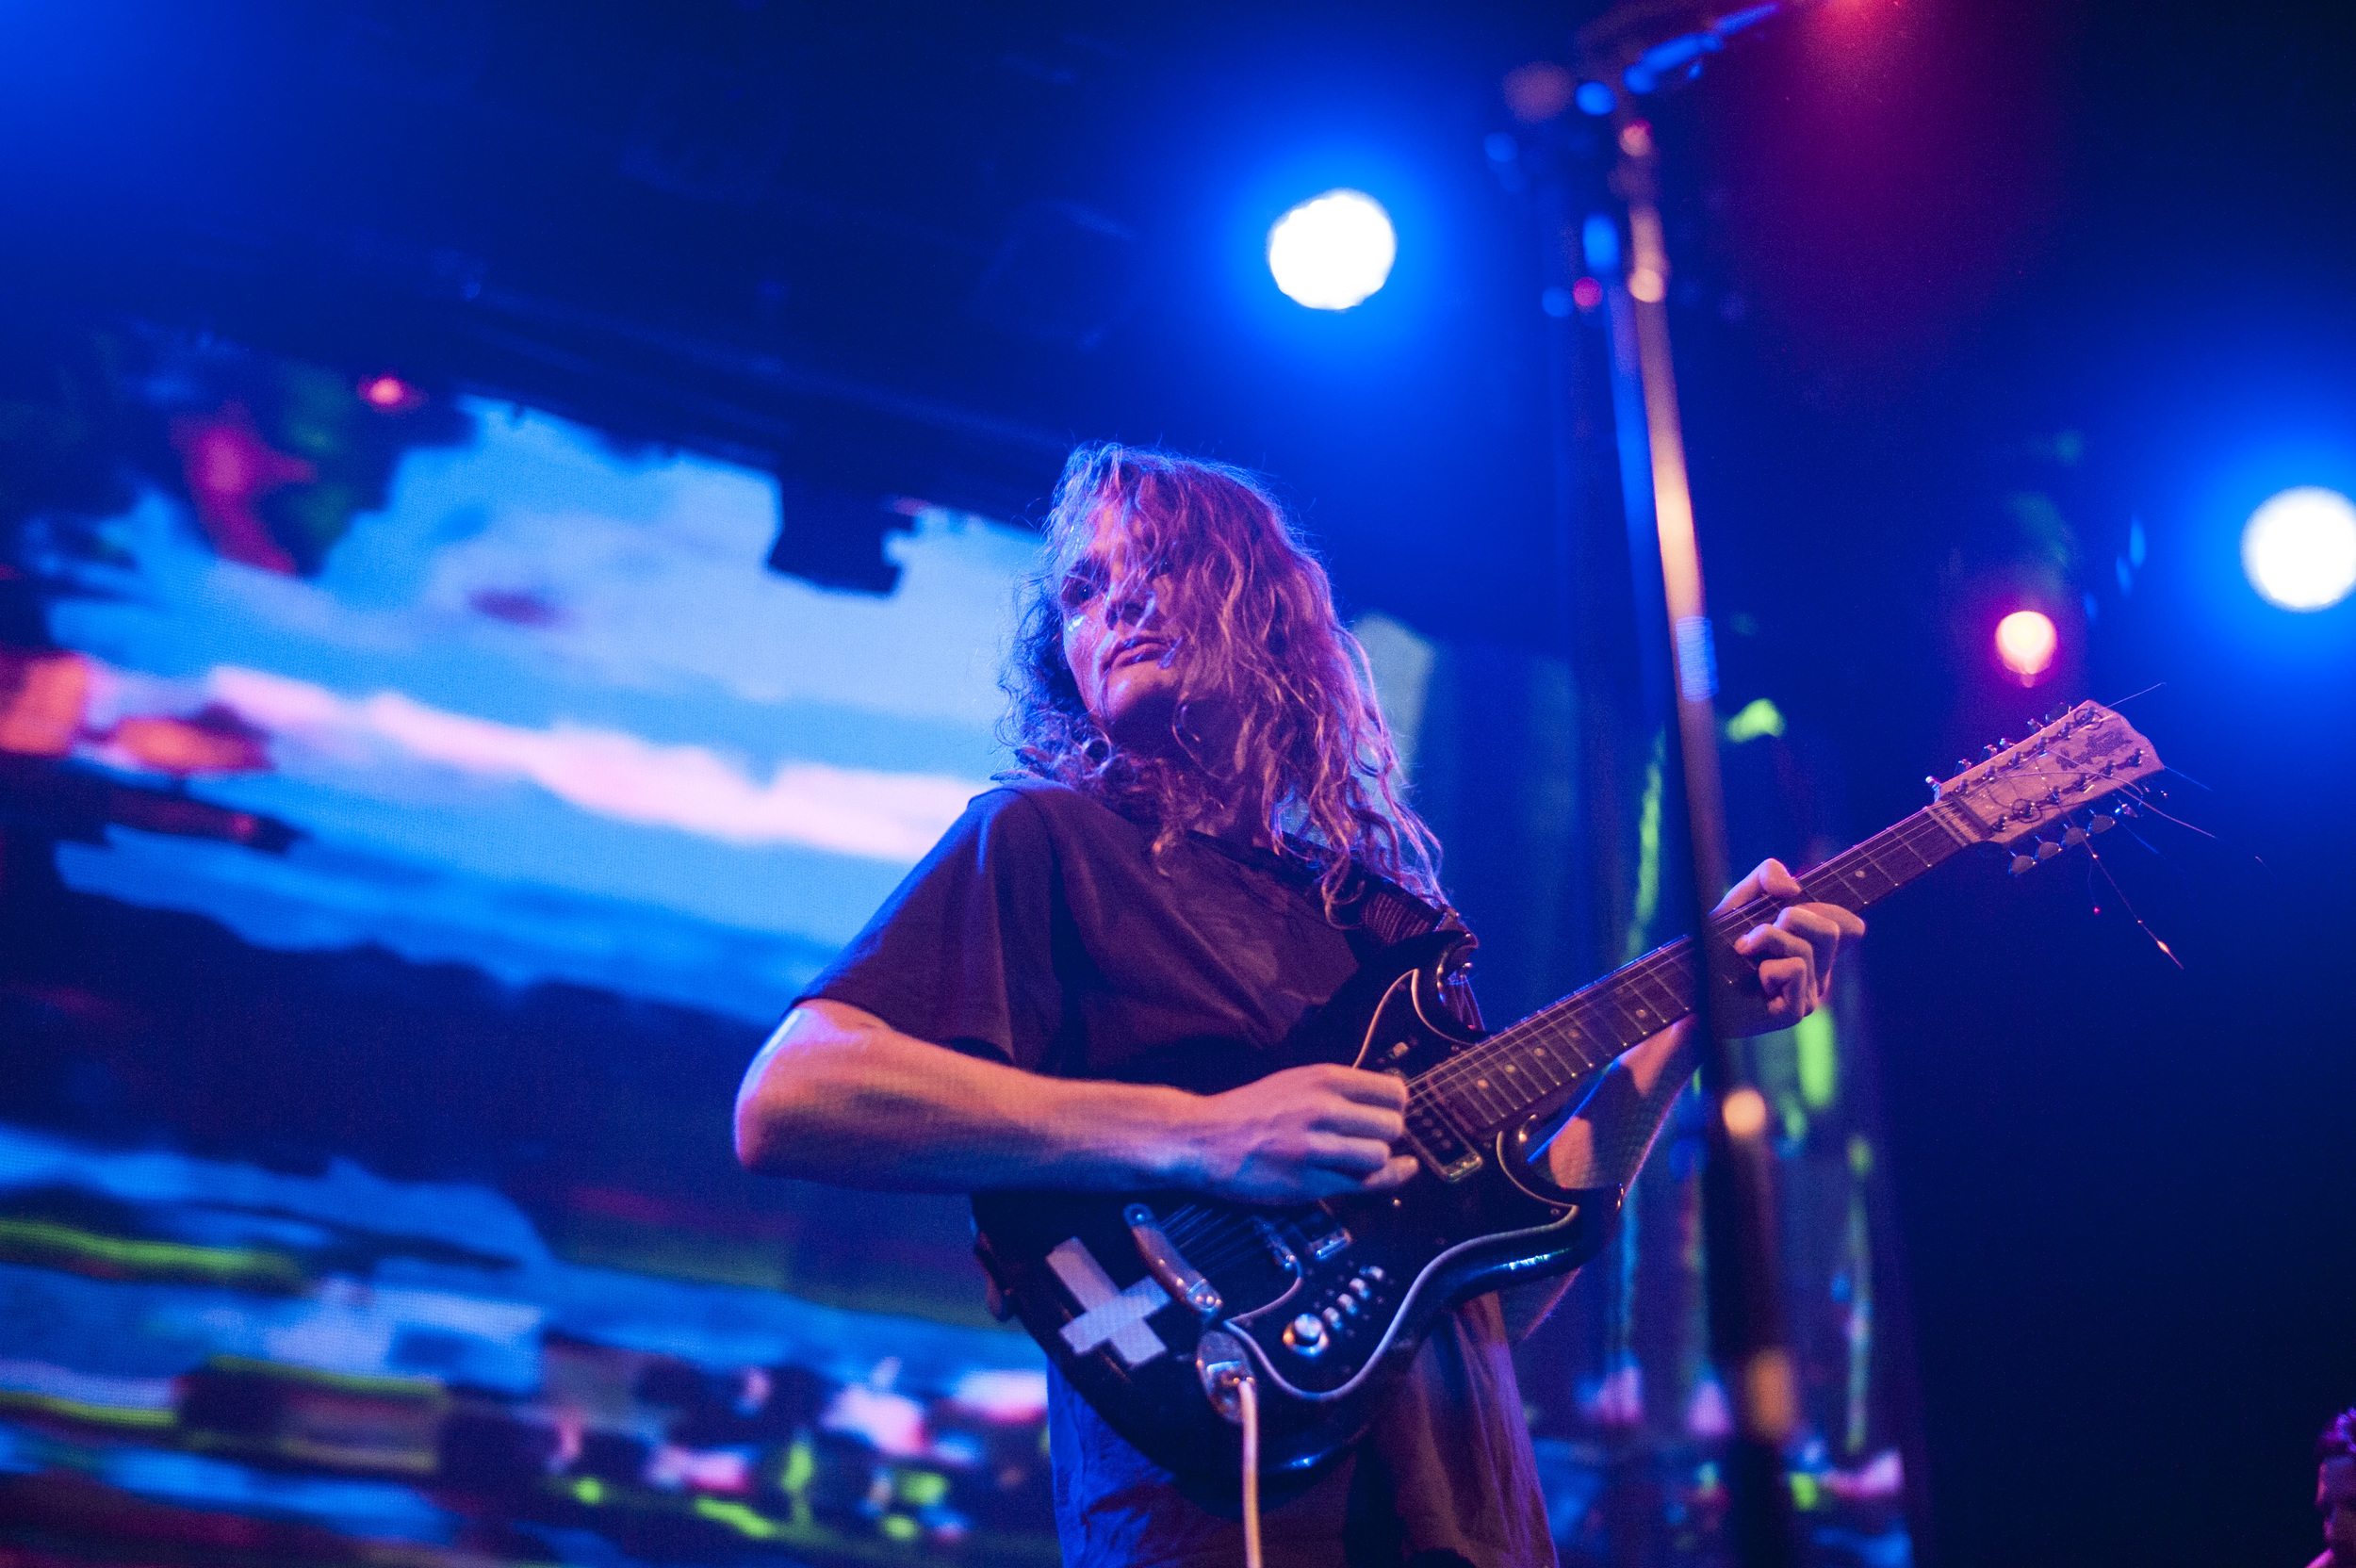 King Gizzard and the Lizard Wizard at Music Hall of Williamsburg